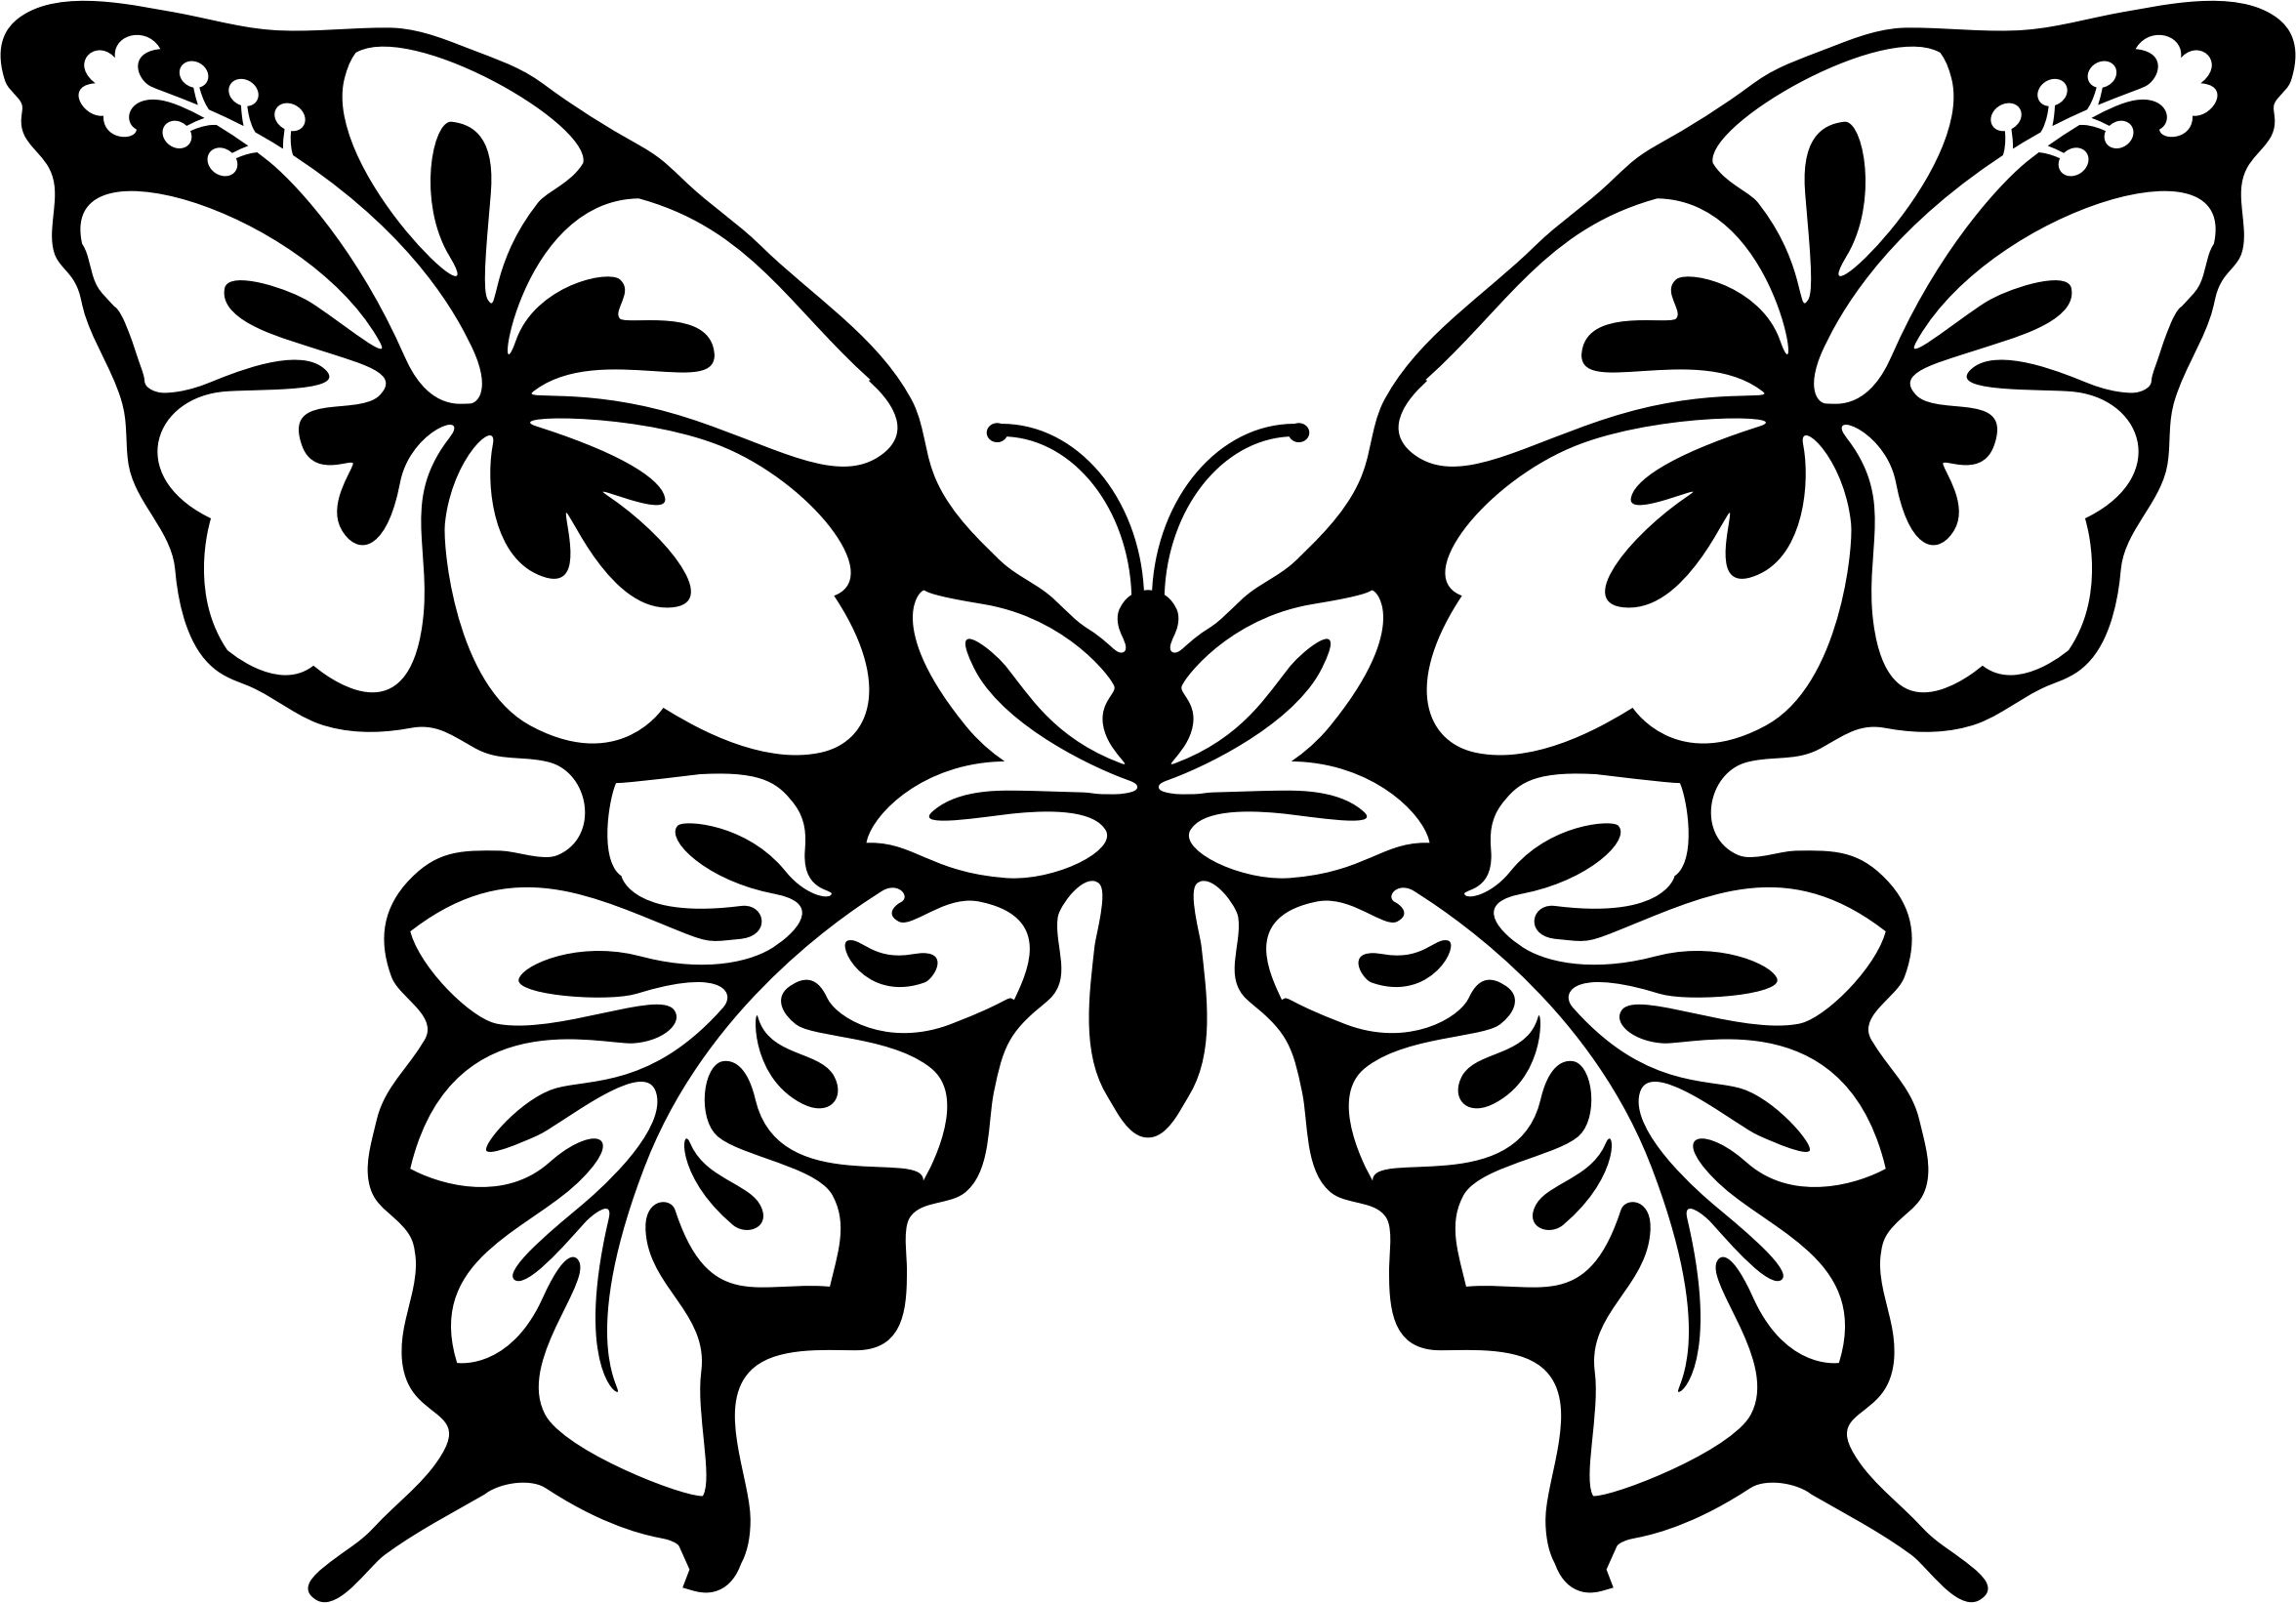 Clipart butterfly big image. Flower line art png